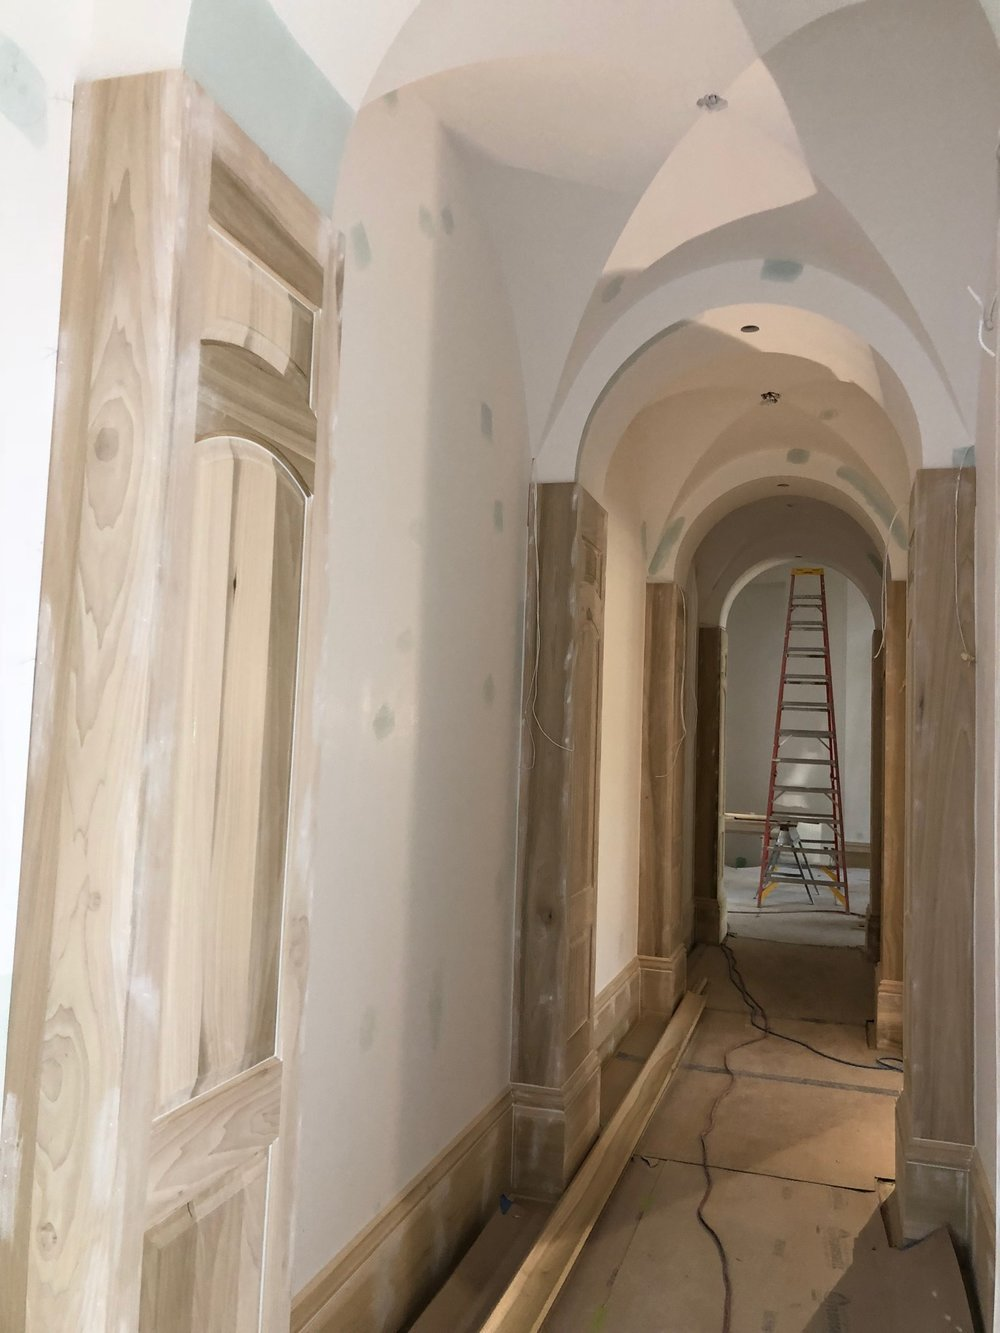 Baseboards all down this amazing hallway.